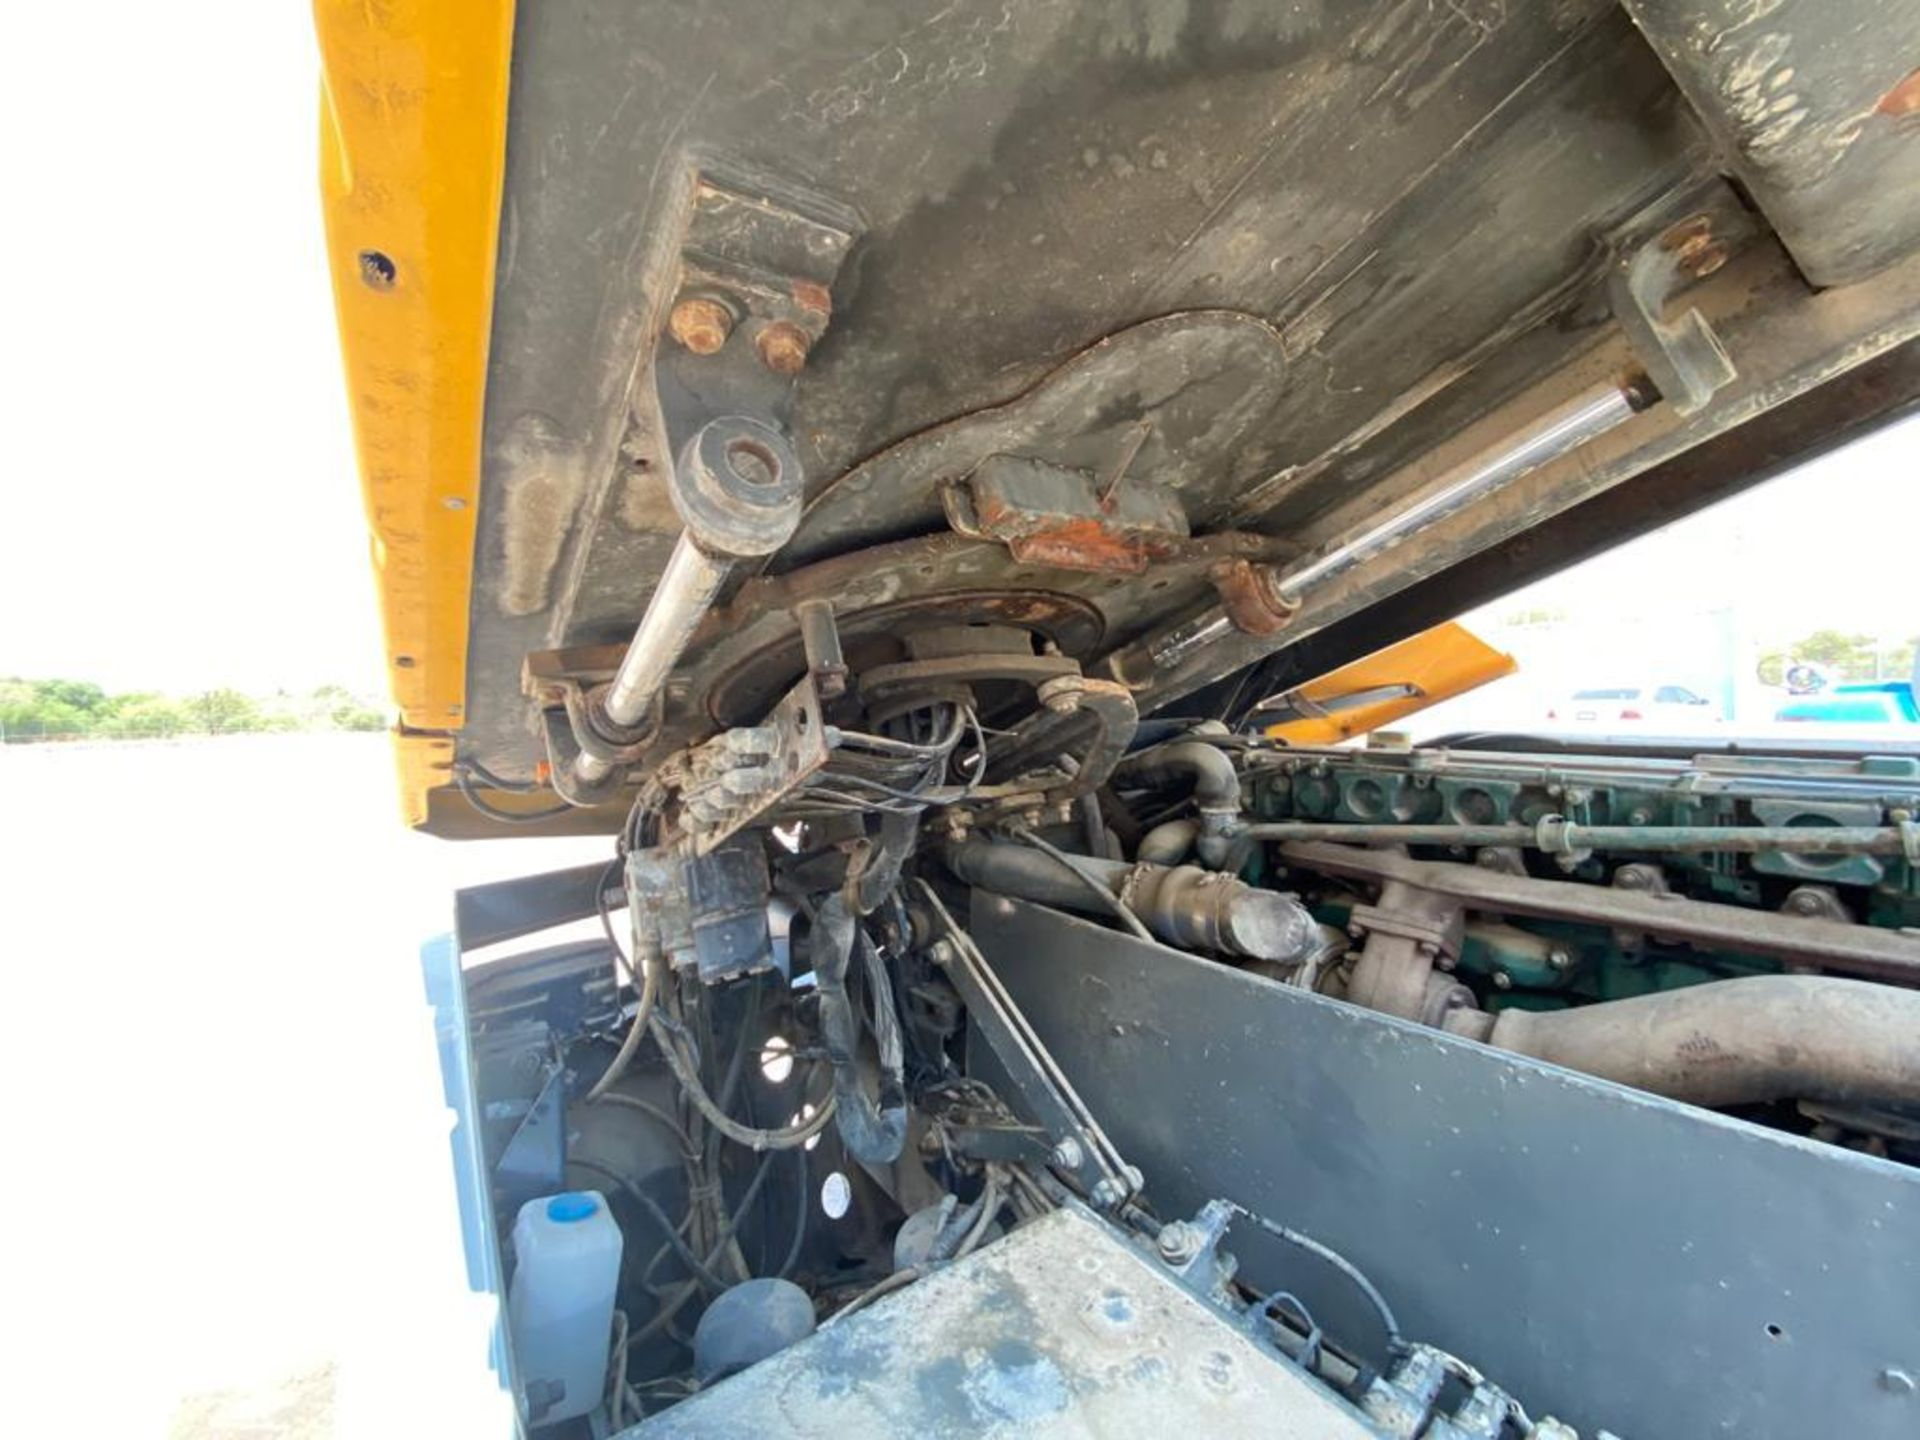 Terberg Capacity 2002 Terminal Tractor, automatic transmission - Image 37 of 57